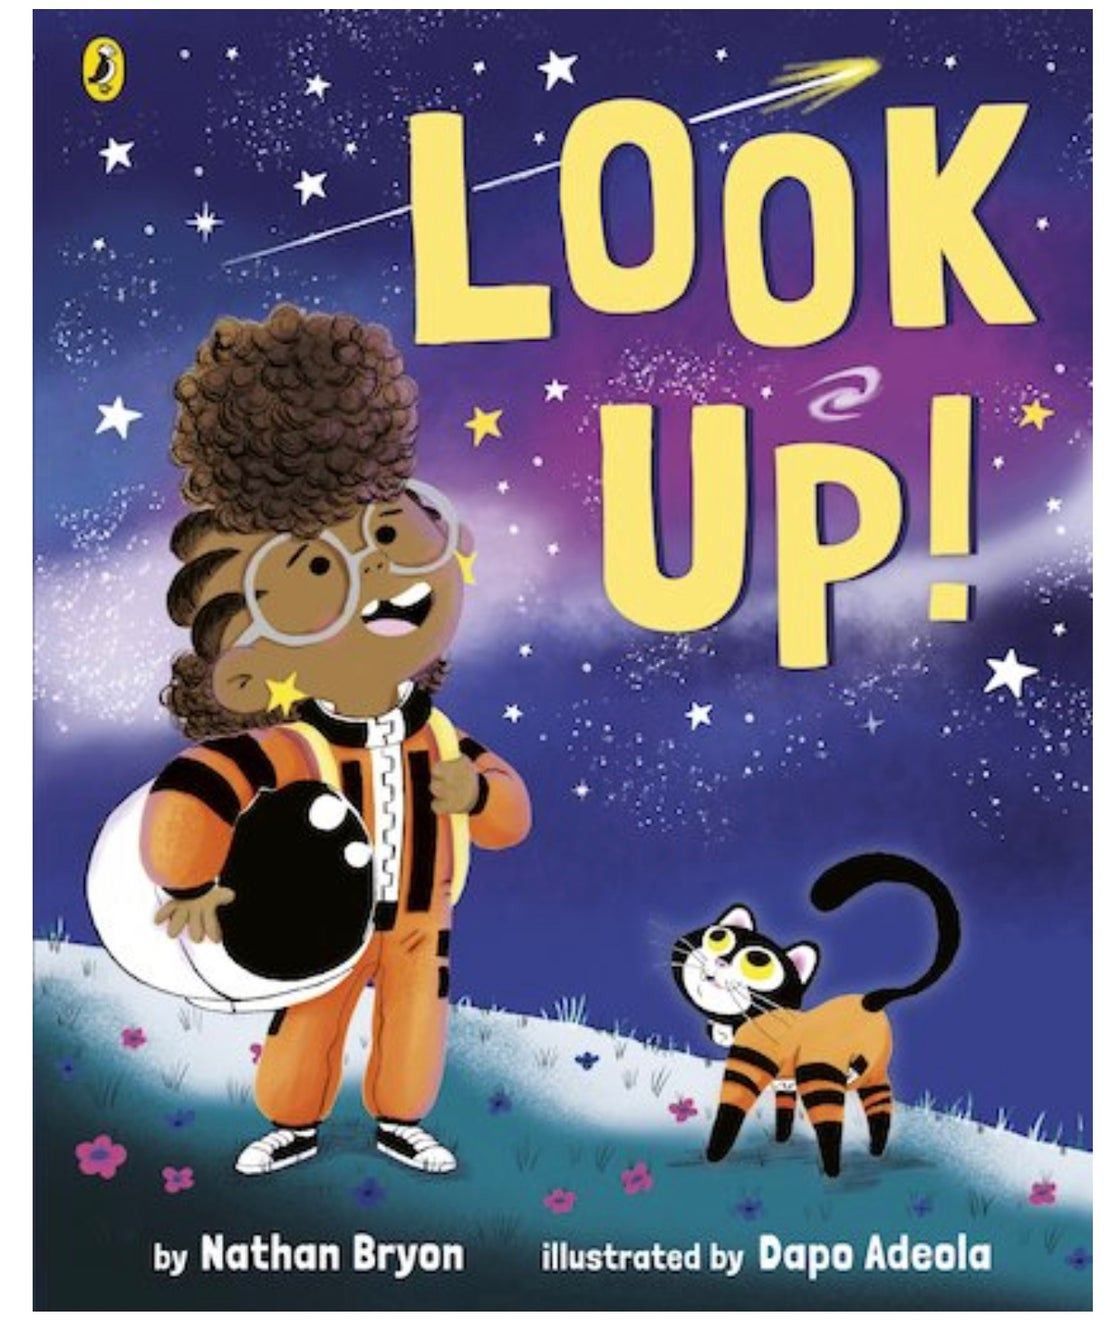 Image of Look Up!